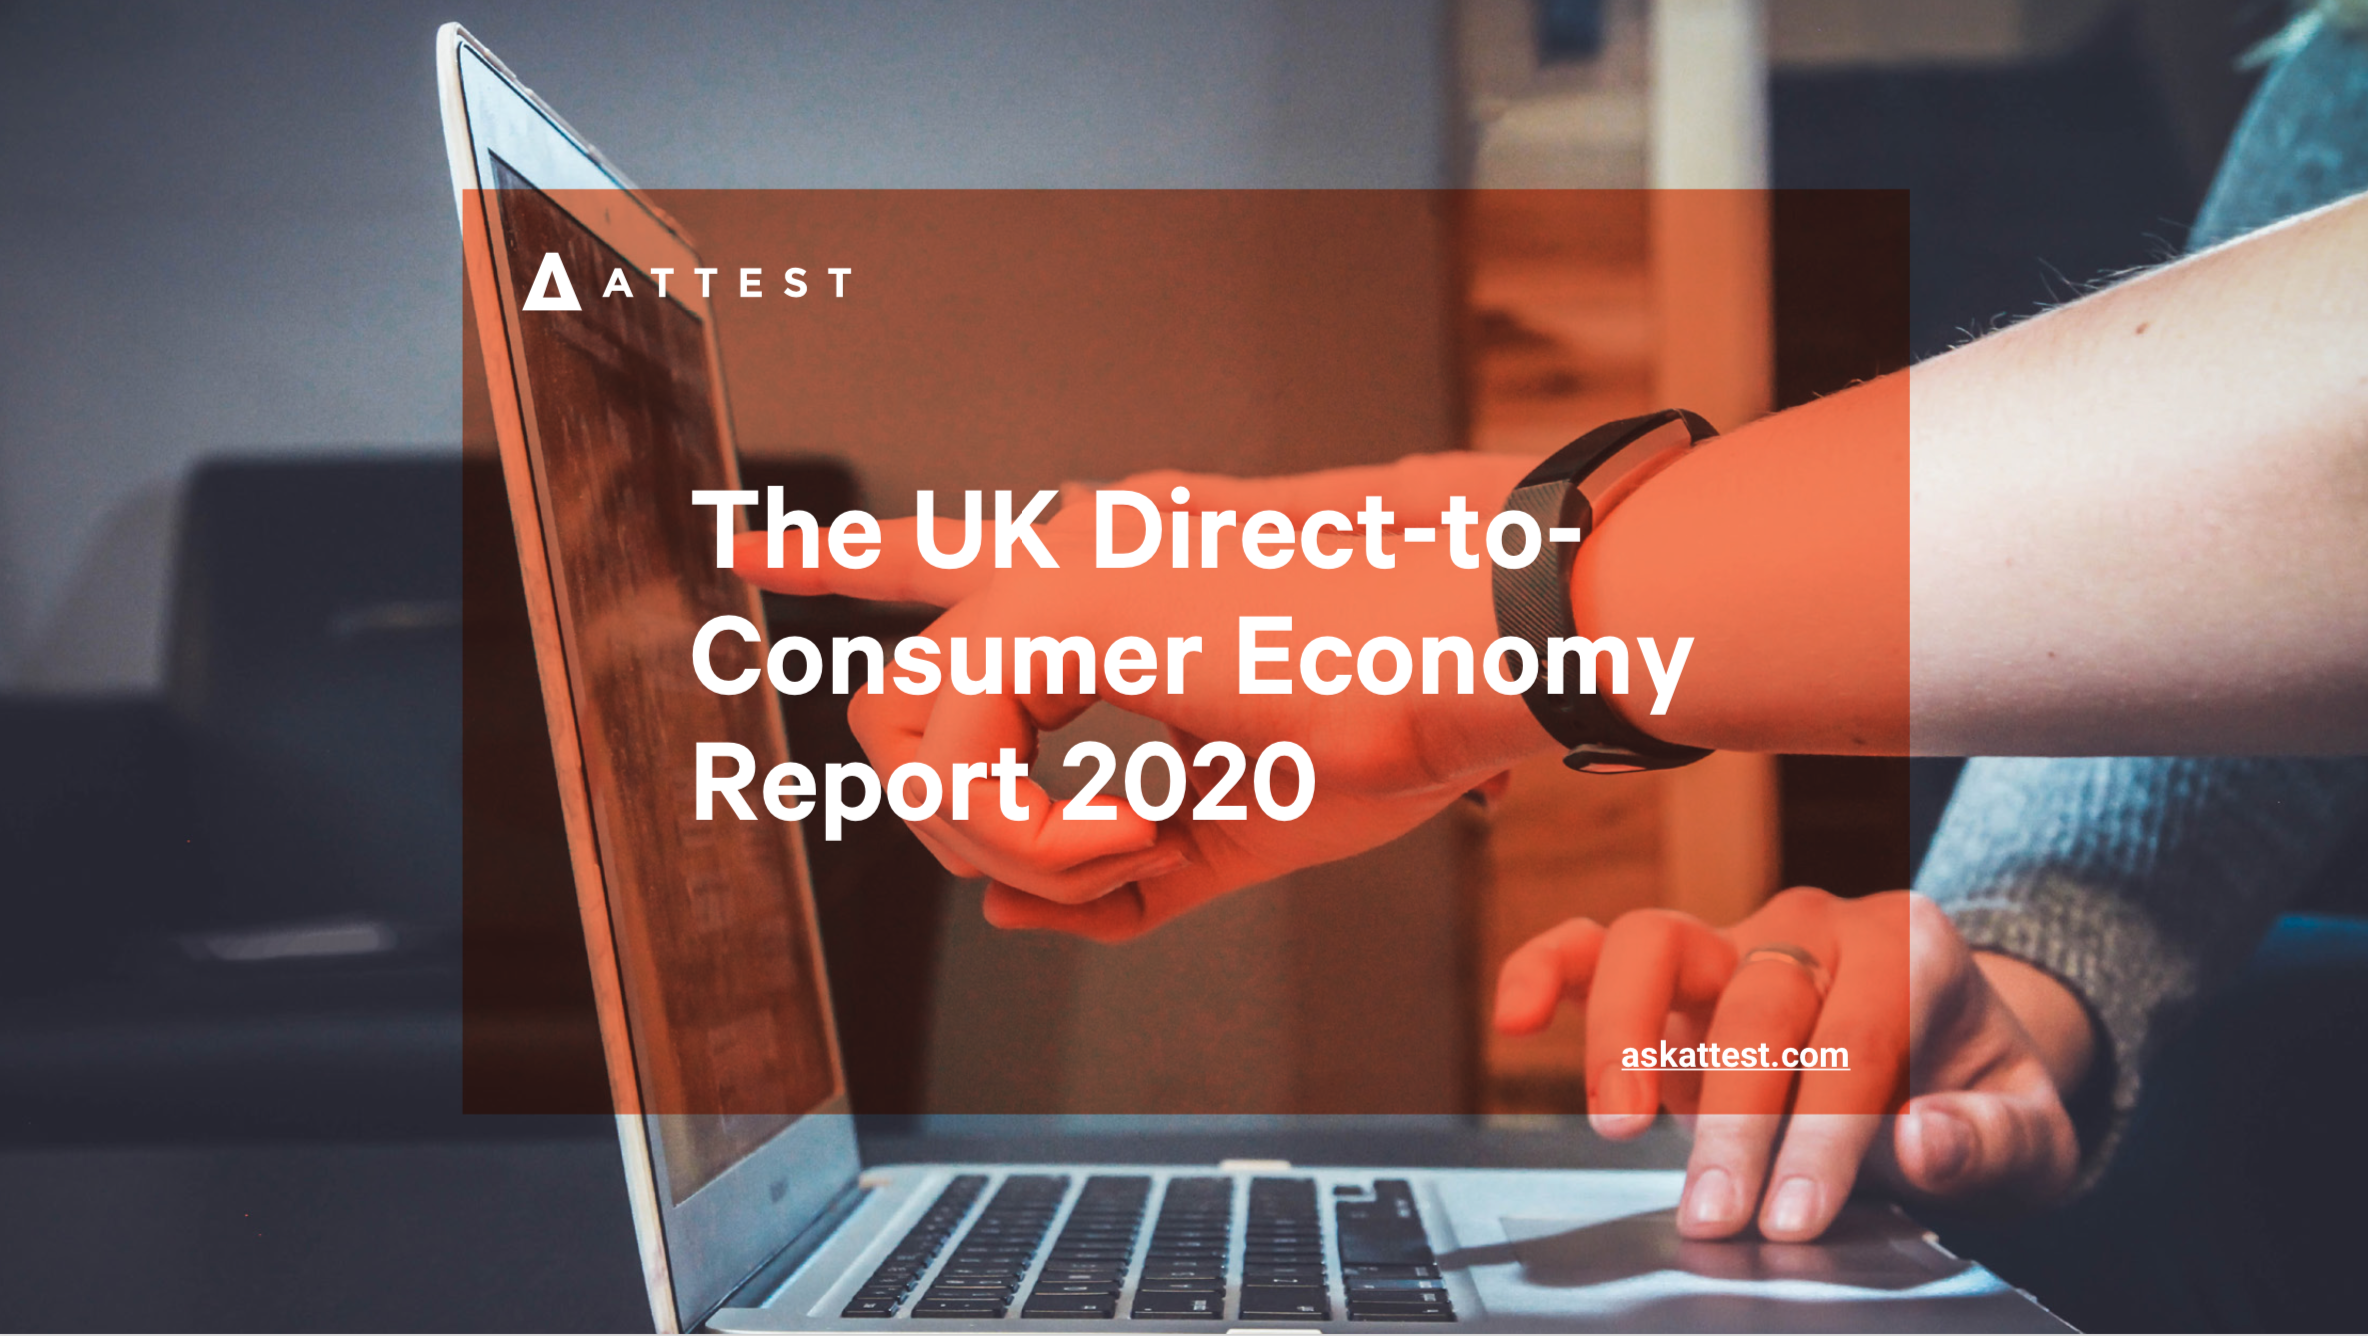 The UK Direct-to-Consumer Economy Report 2020